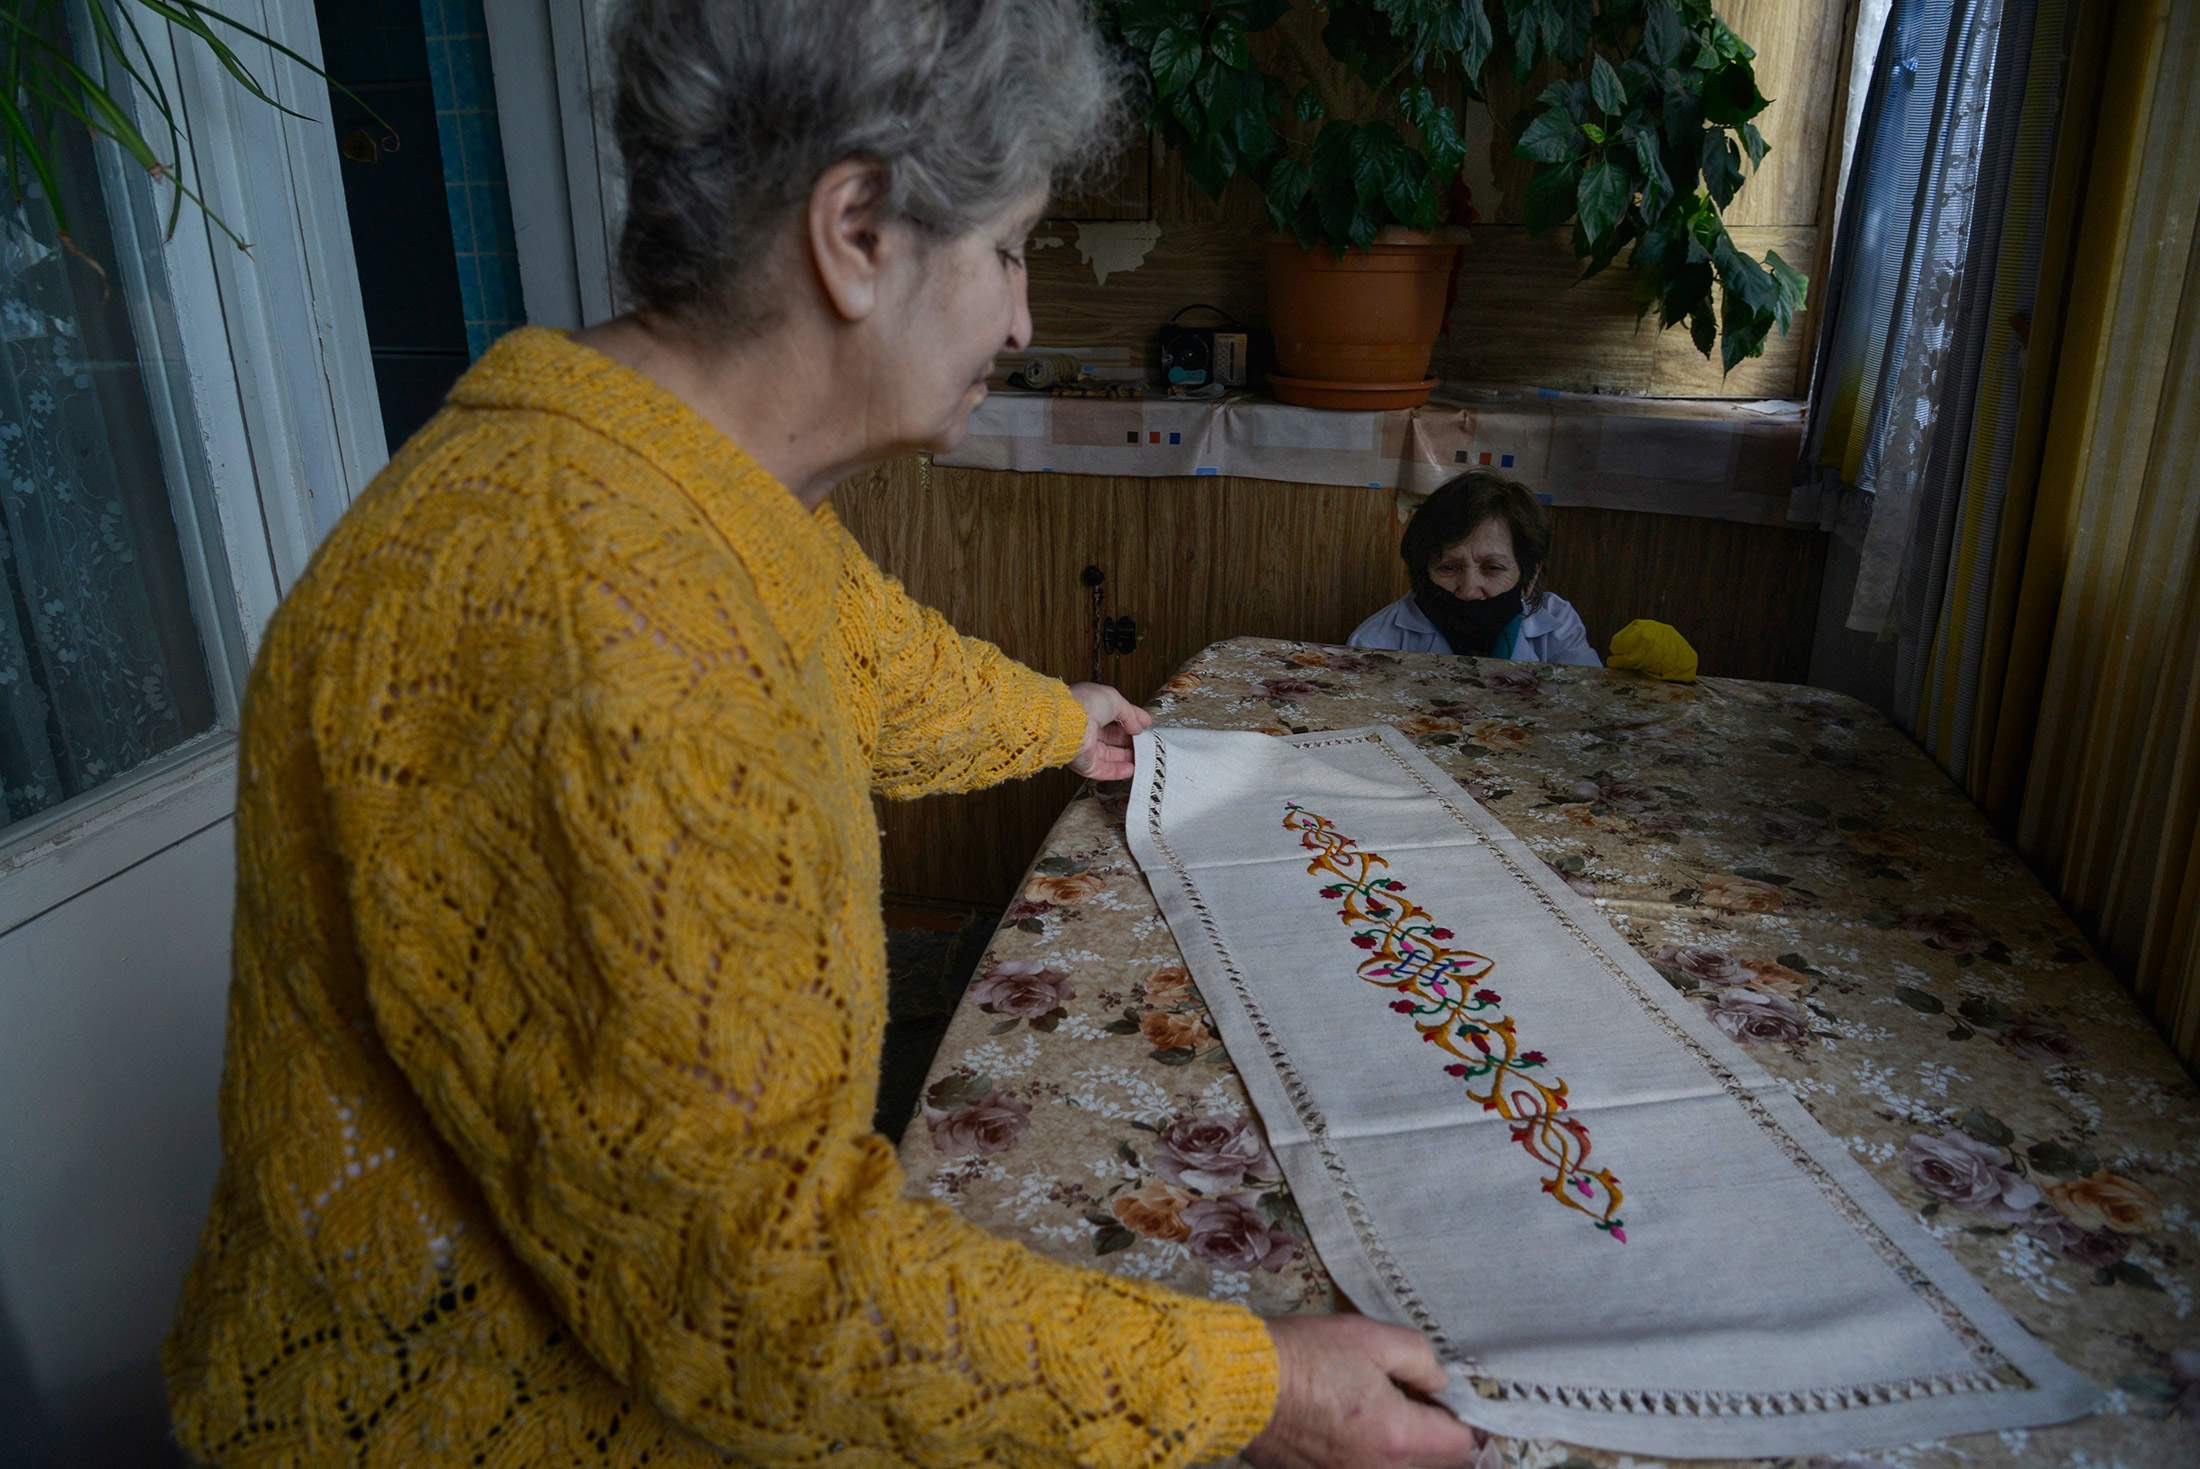 Margo Avetyan shows a tablecloth she embroidered. Several years ago, she started to sell her embroid ...